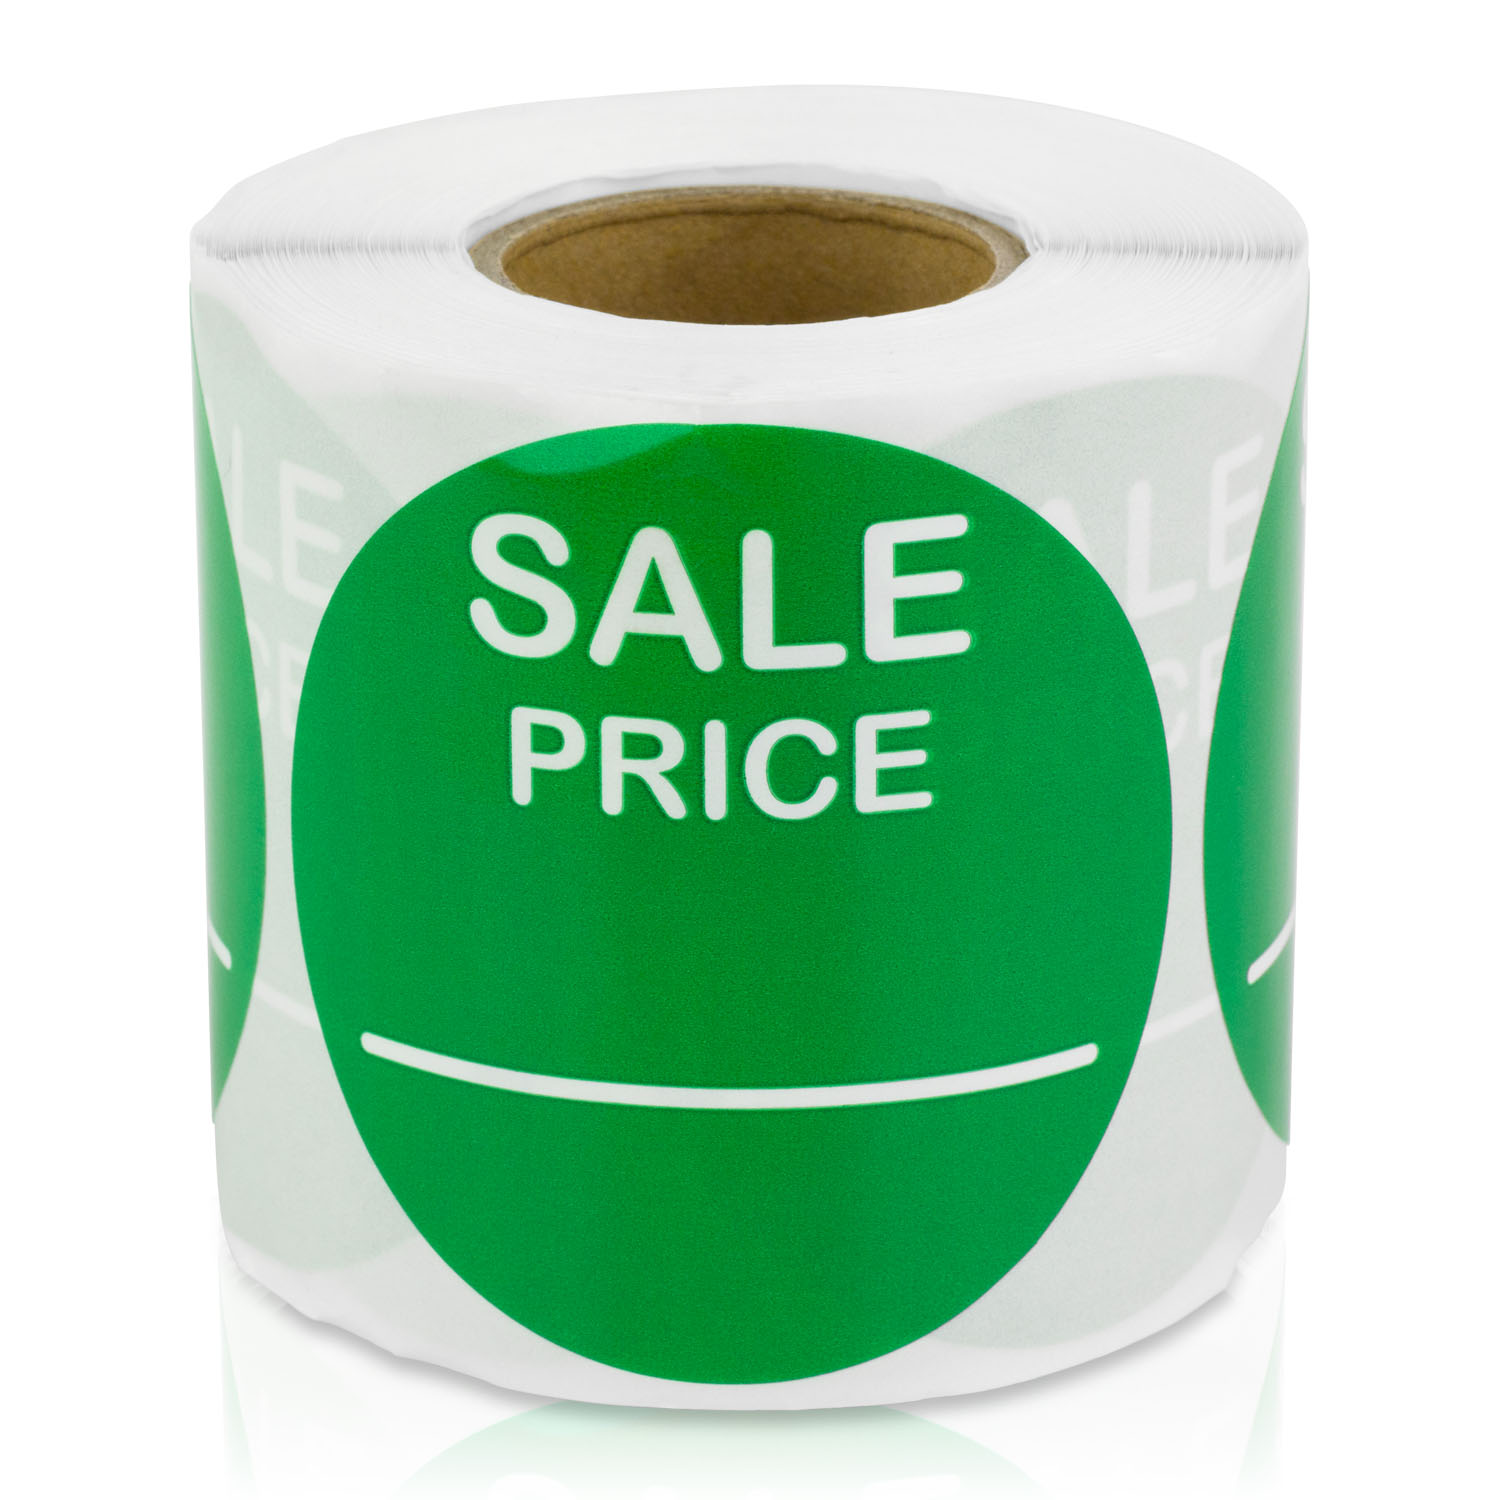 Garage Sale Price Stickers Details About Sale Price Labels Clearance Promotion Garage Retail Stickers 2